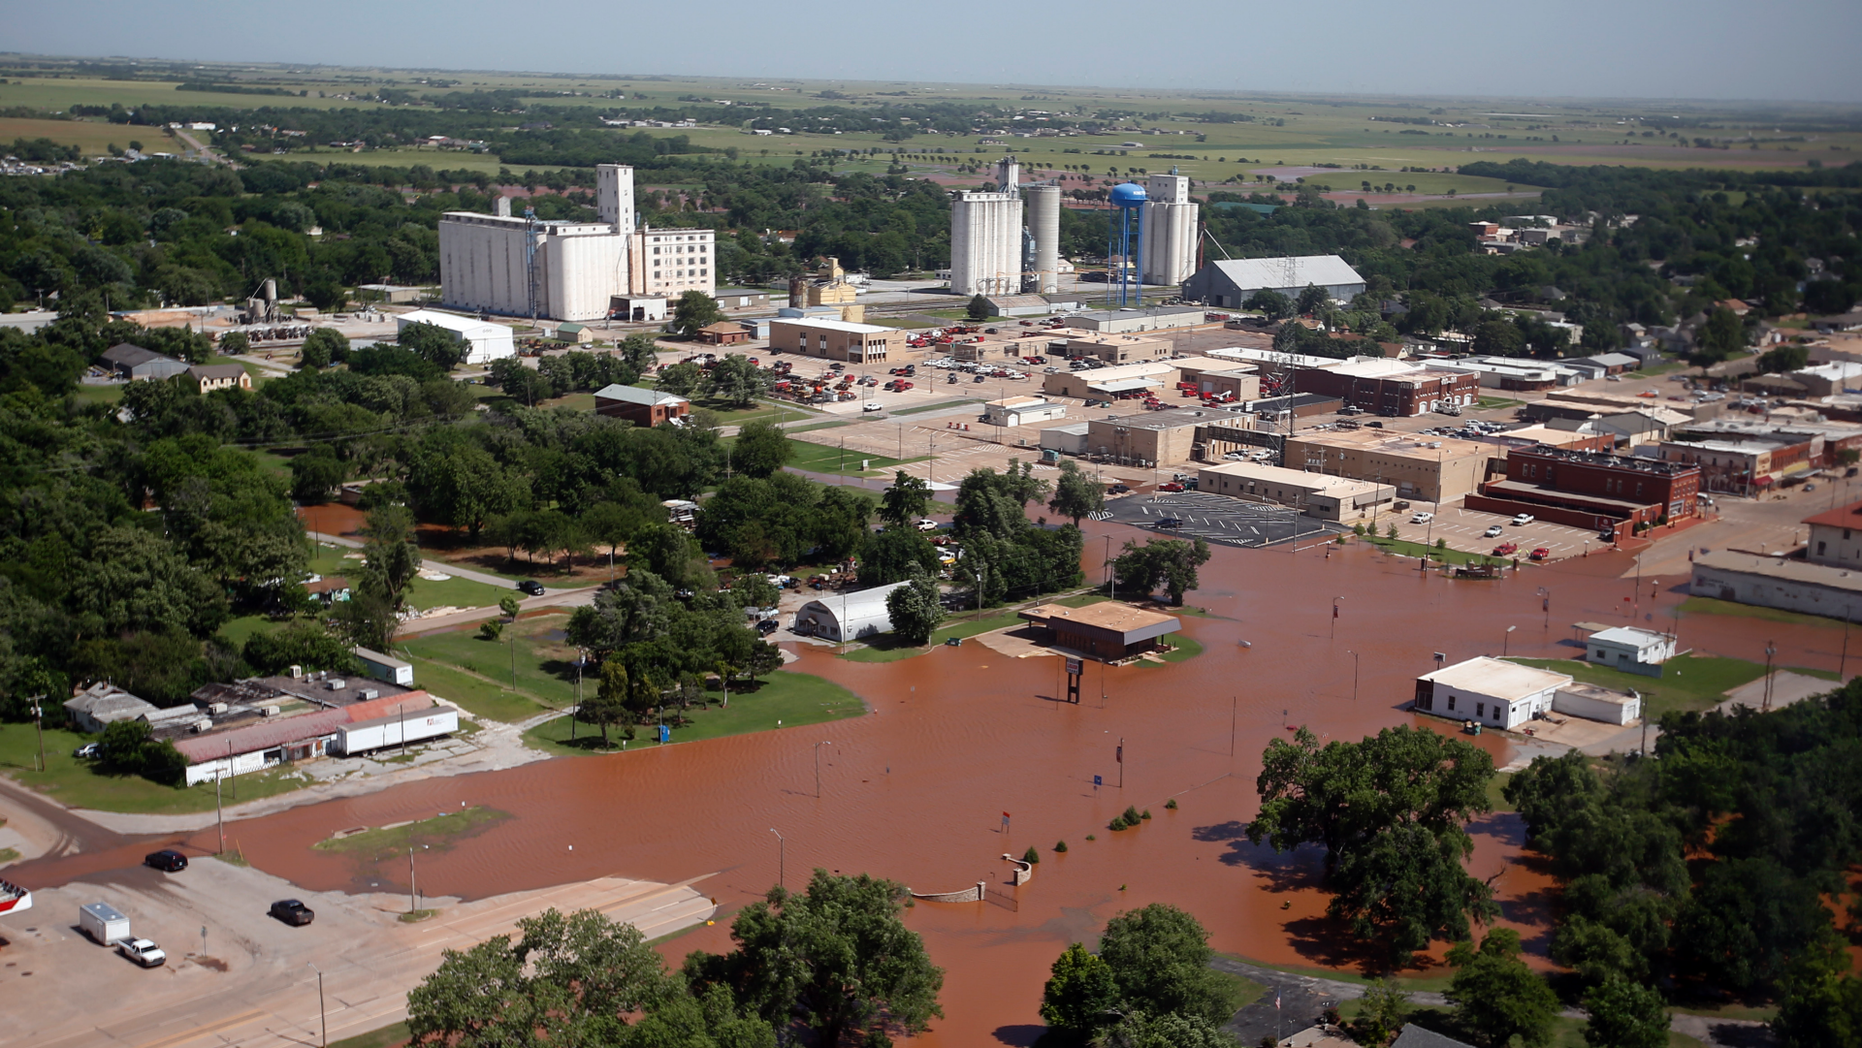 The Latest: Arkansas River town ordered evacuated | Fox News